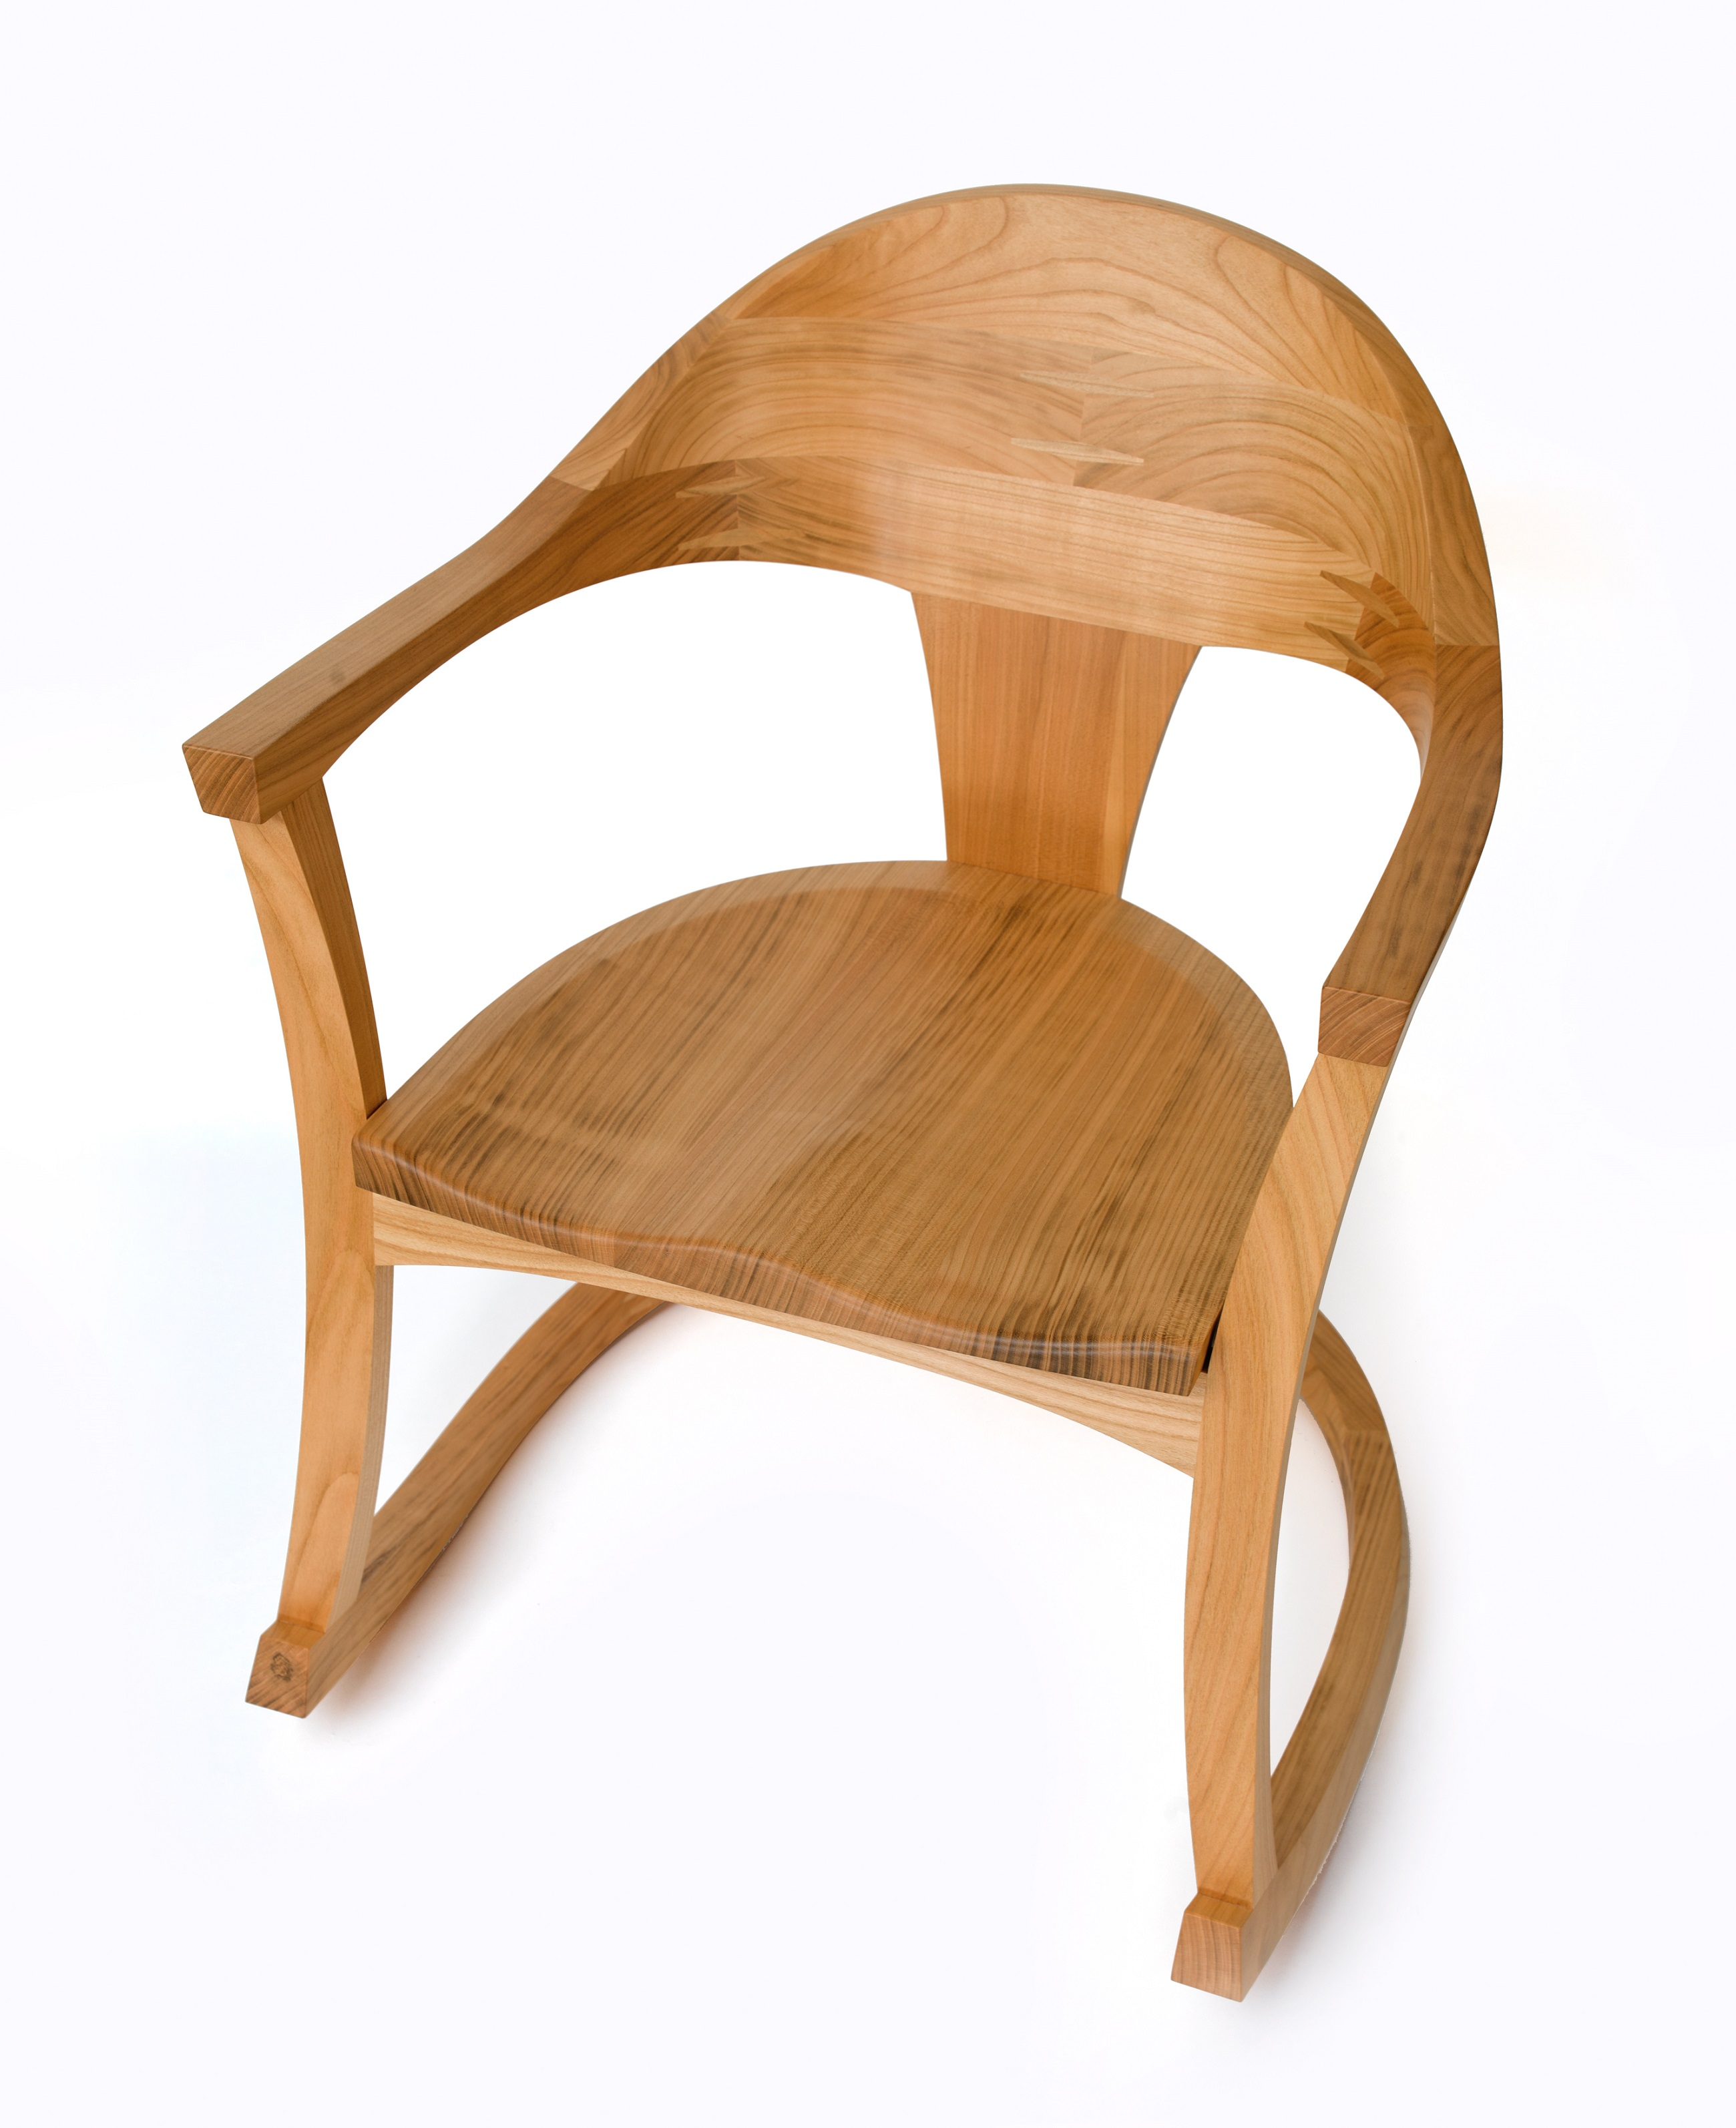 'Robin' the rocking chair - in British cherry